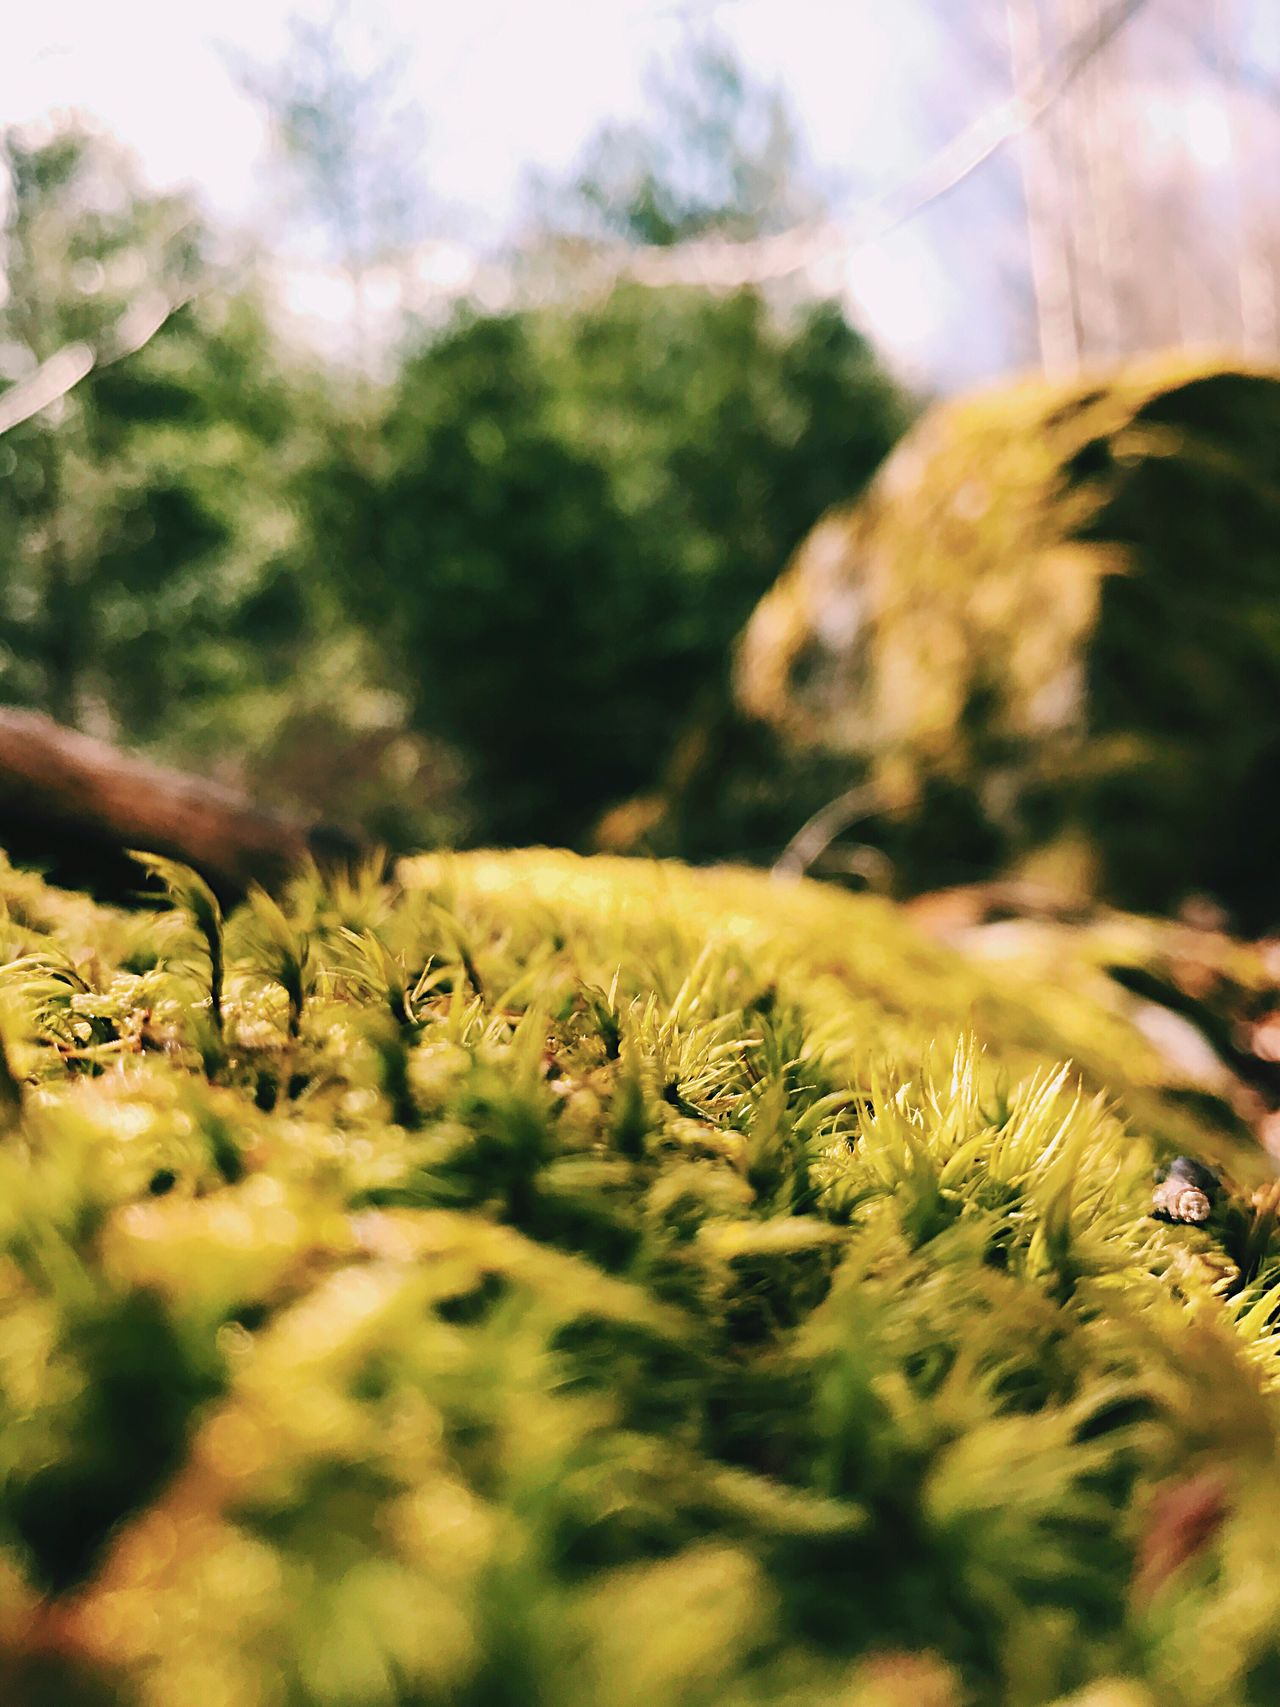 Moss in close up. Selective Focus Growth Plant Nature Day No People Tree Close-up Outdoors Beauty In Nature Fragility Flower Sky Freshness Moss Mossporn Moss-covered Mossy Nature Photography